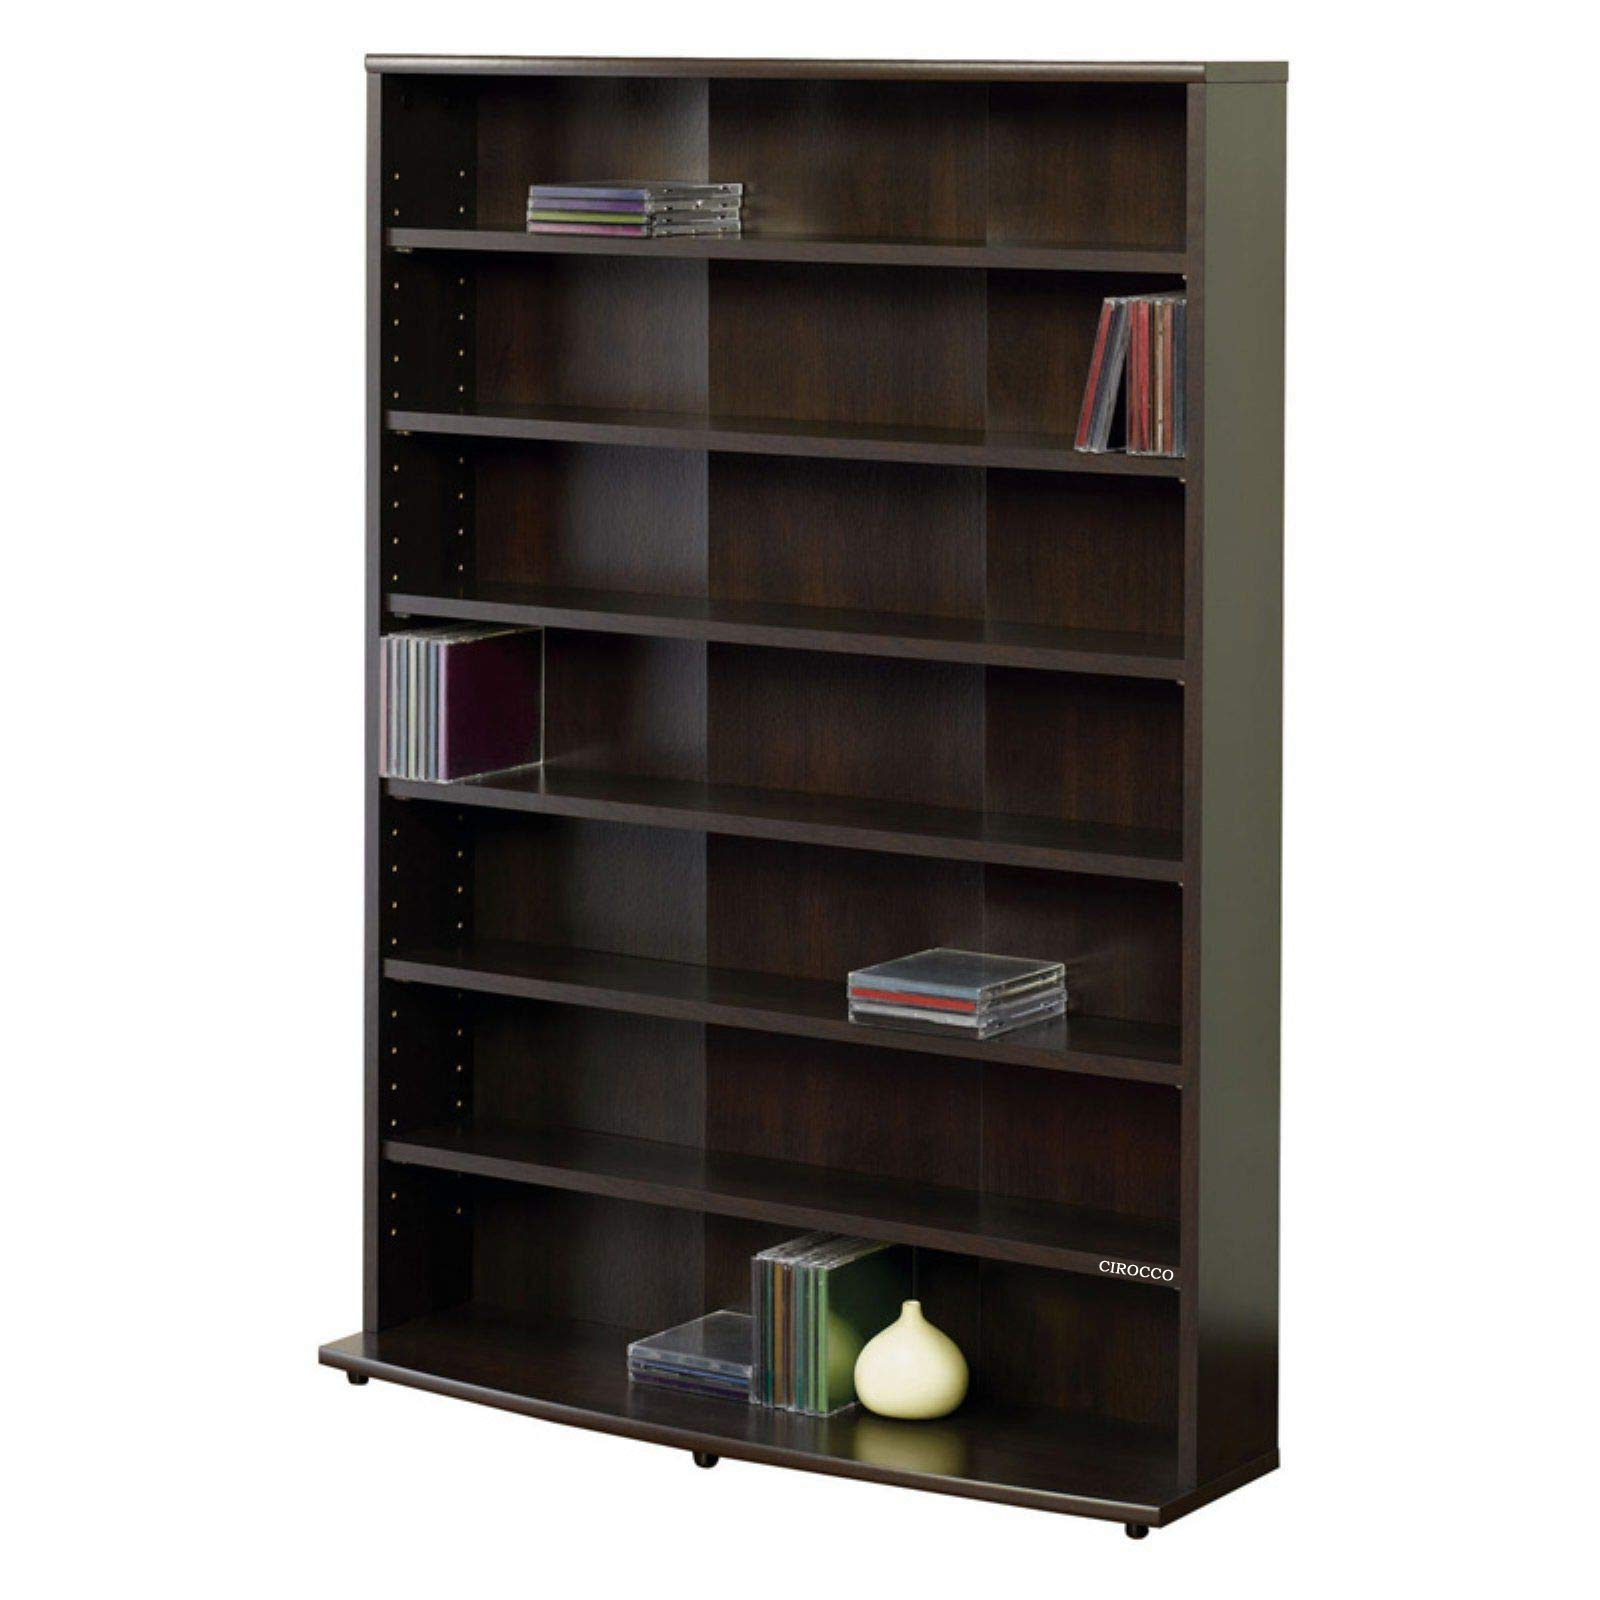 Cirocco 6 Tiers Multimedia Storage Tower Shelves Cinnamon Cherry - Wooden Bookshelf | Adjustable Large Heavy Duty Wood Supports 145 VHS Tape 280 DVDs and 436 CDs Collections | For Home Apartment Books by Cirocco